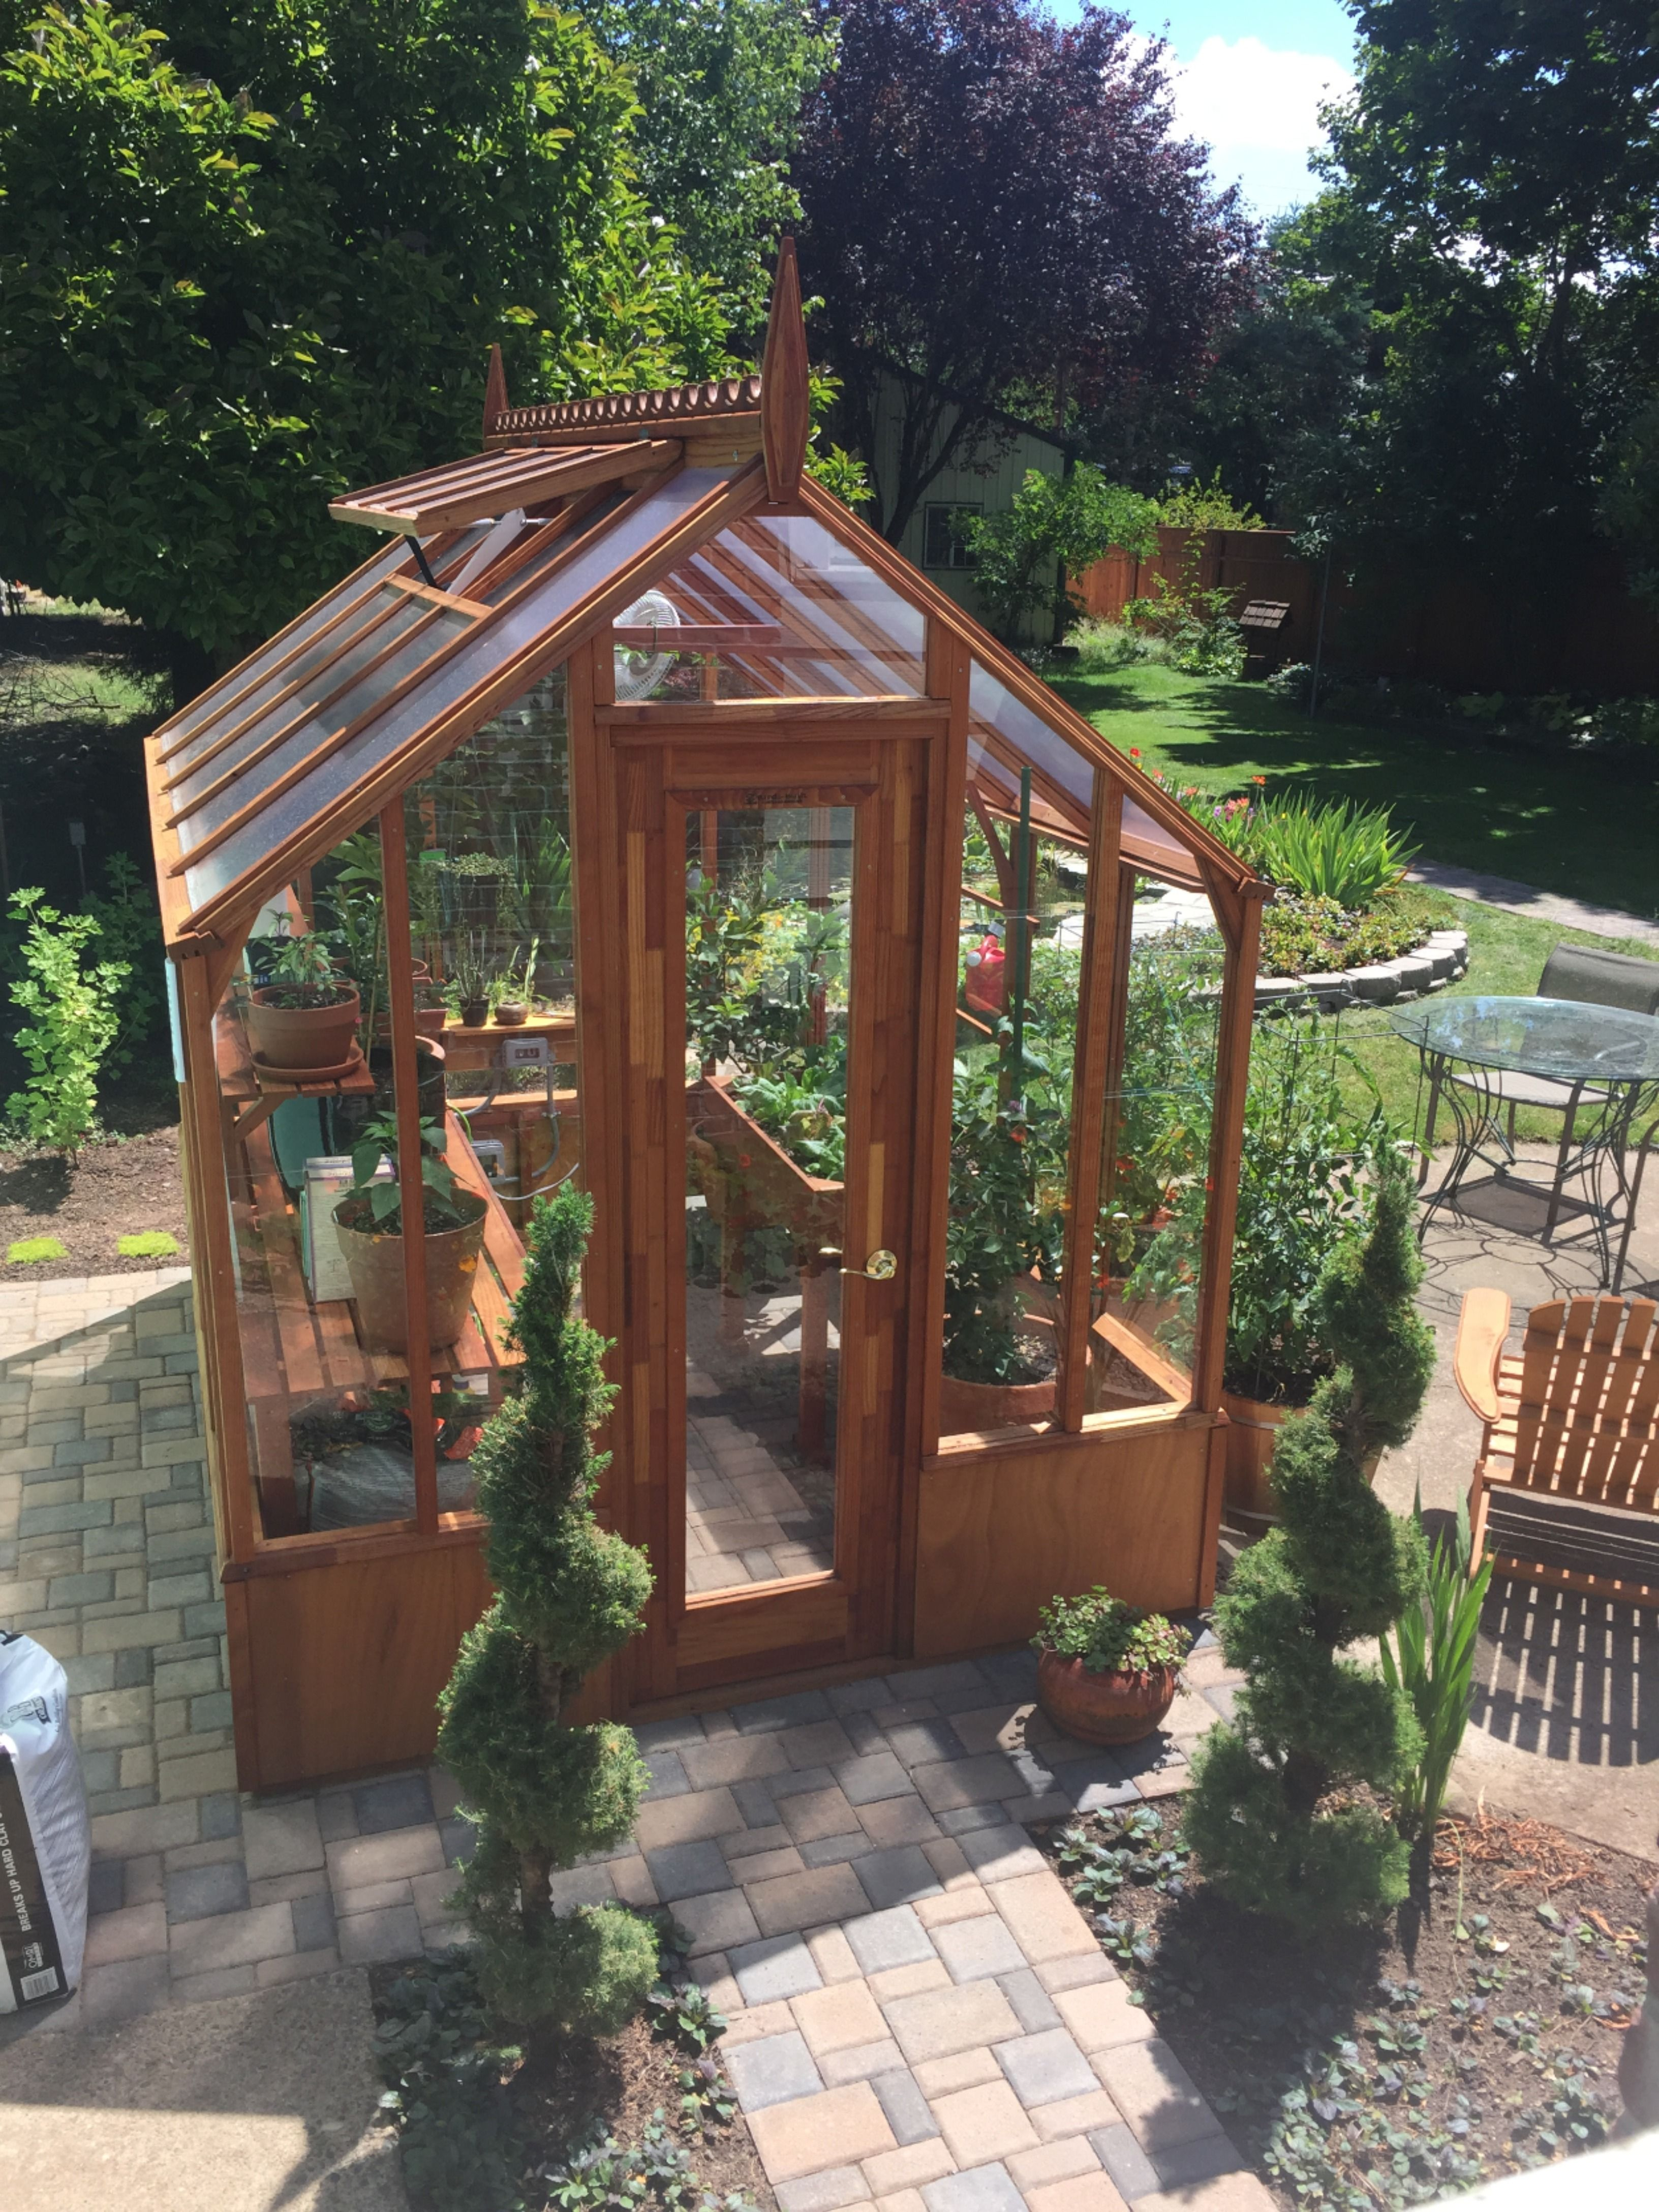 Small Greenhouse By Sturdi Built Greenhouse In 2020 Greenhouse Green House Design Greenhouse Plans